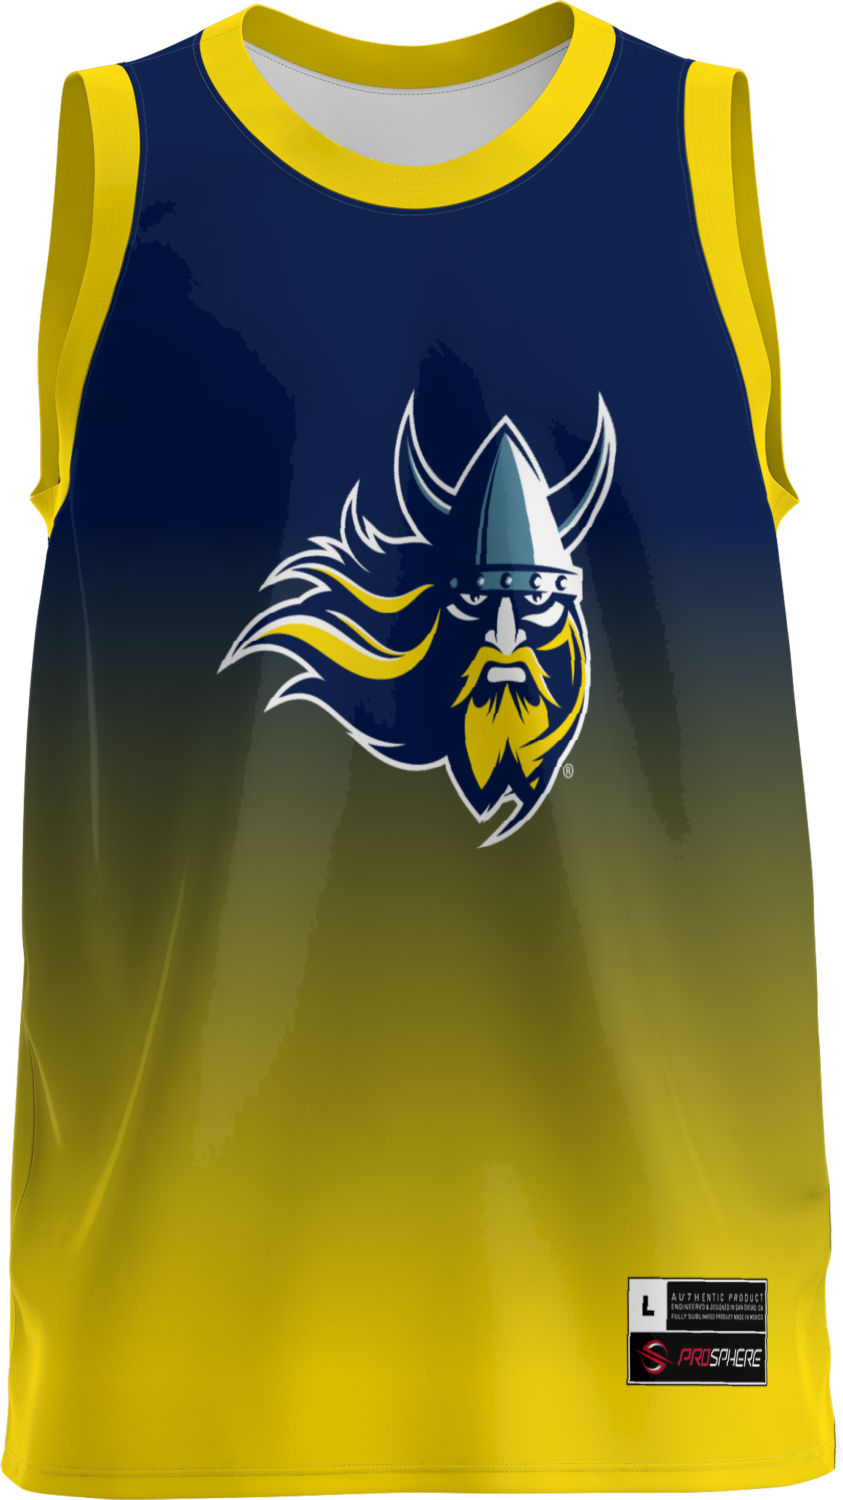 Prosphere Augustana University Men S Replica Basketball Jersey Ombre